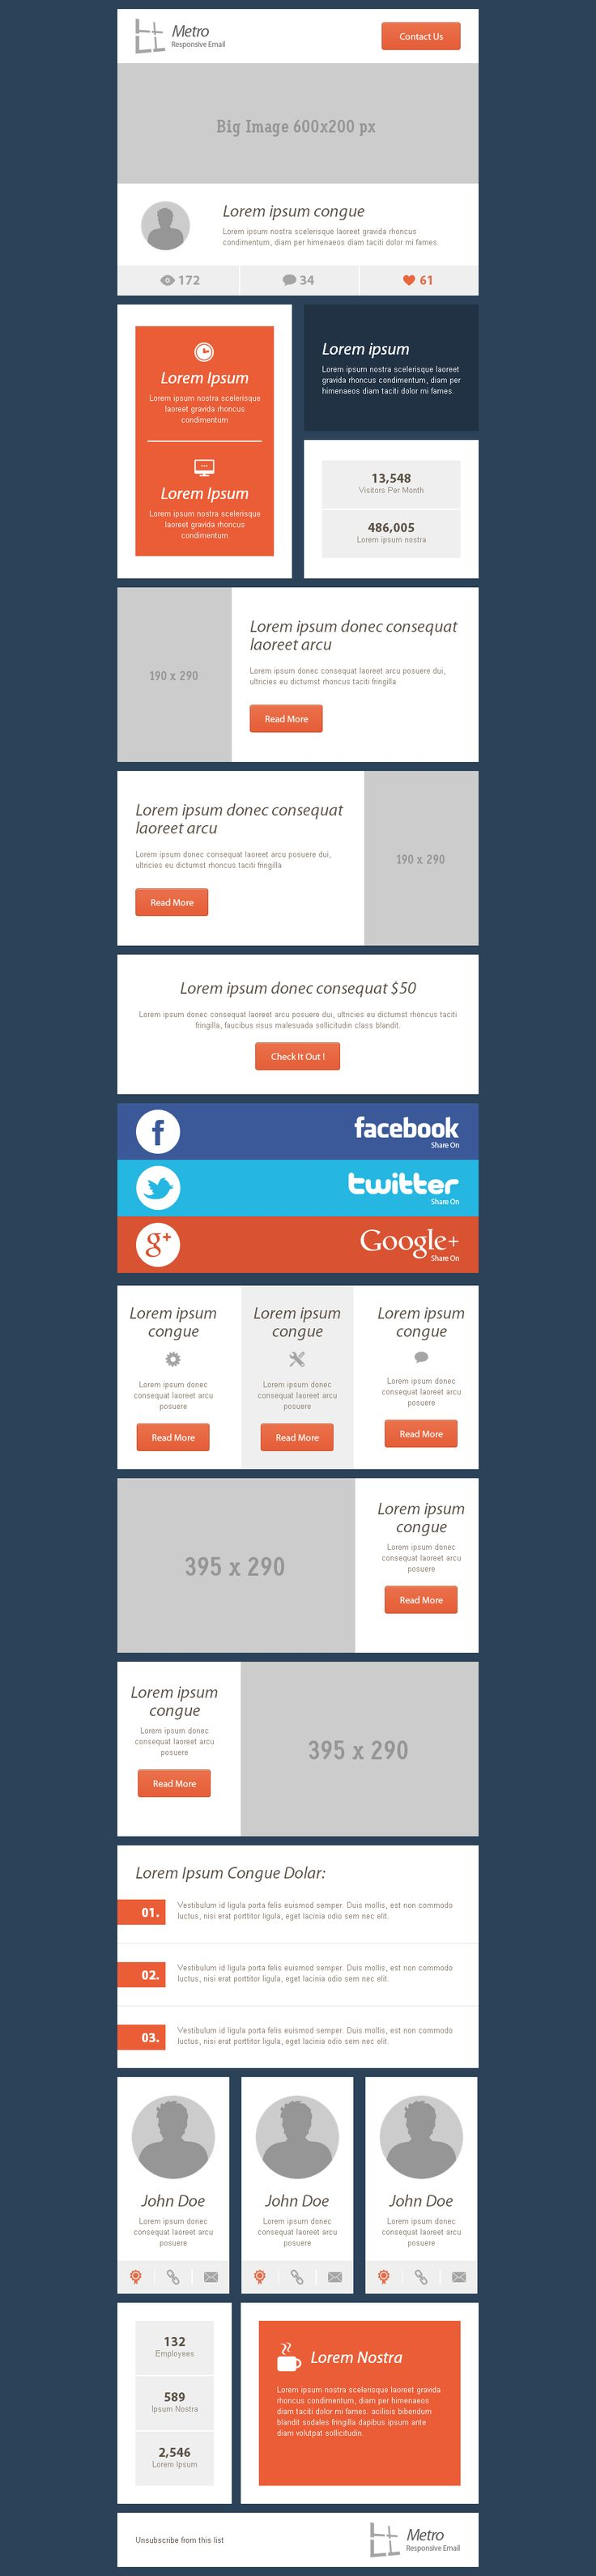 Top 5 Email Template Design Ideas